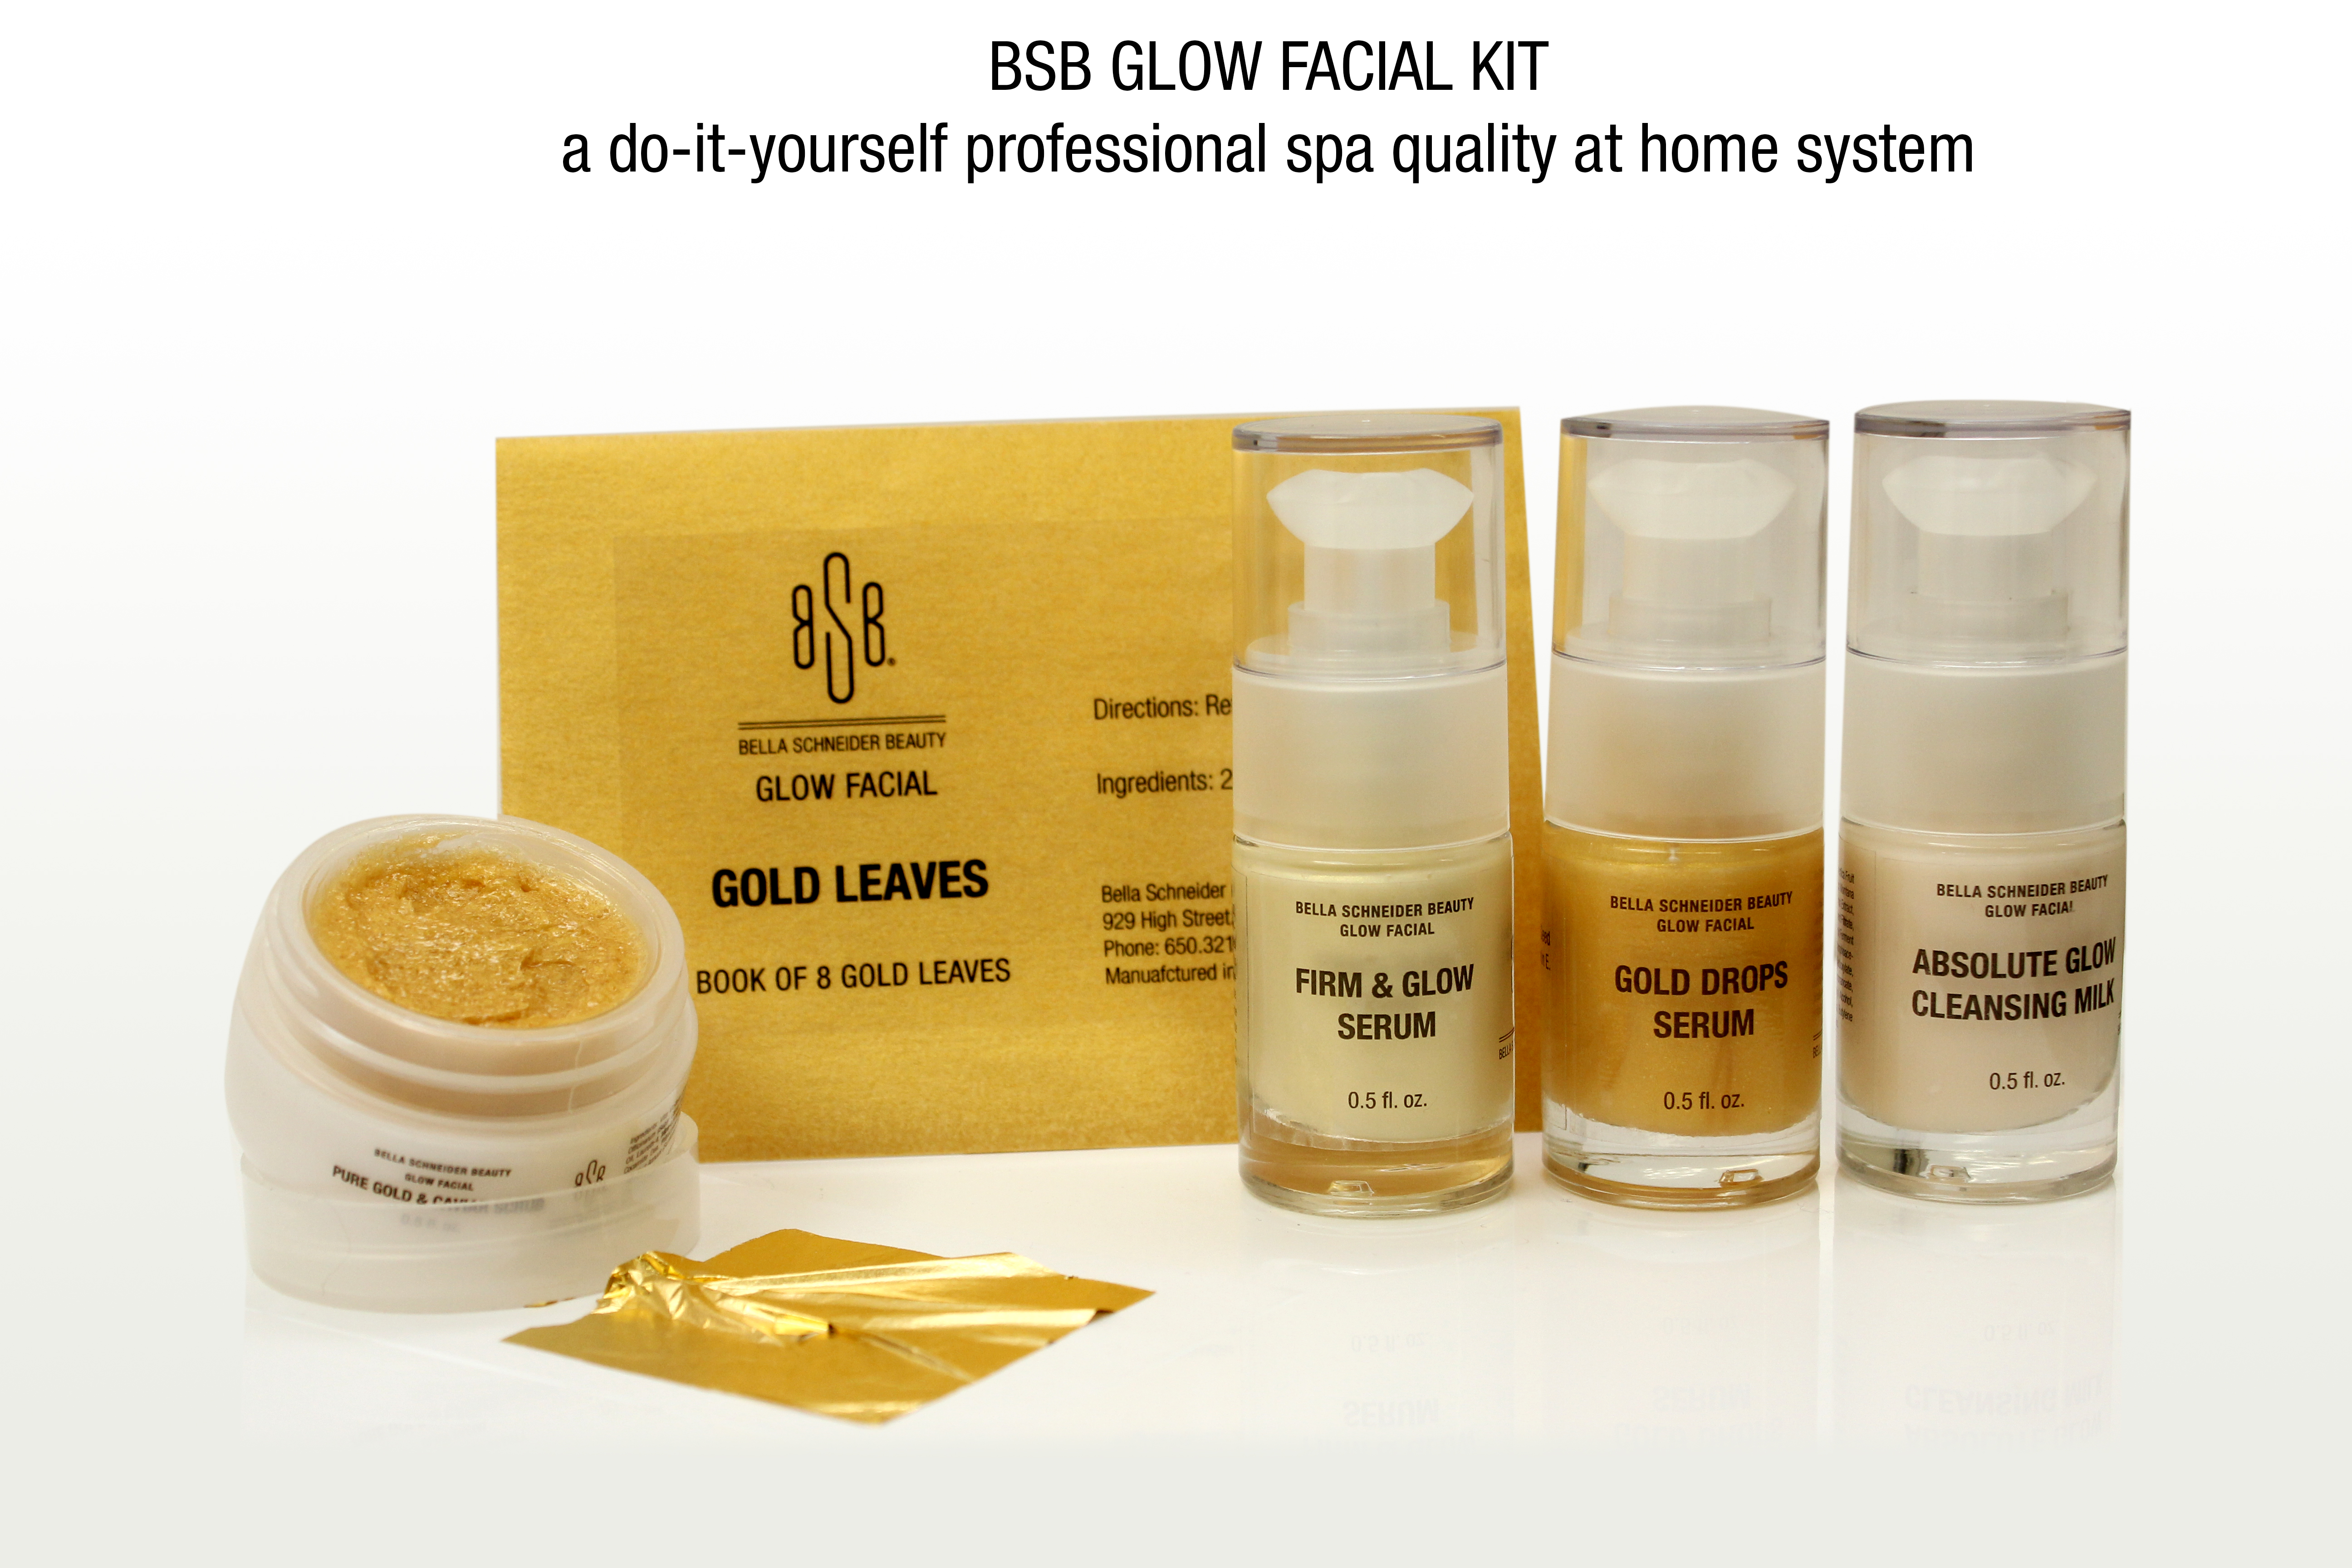 Bsb glow facial kit a do it yourself professional spa quality facial glow kit put your most gorgeous face forward with this diy solutioingenieria Gallery